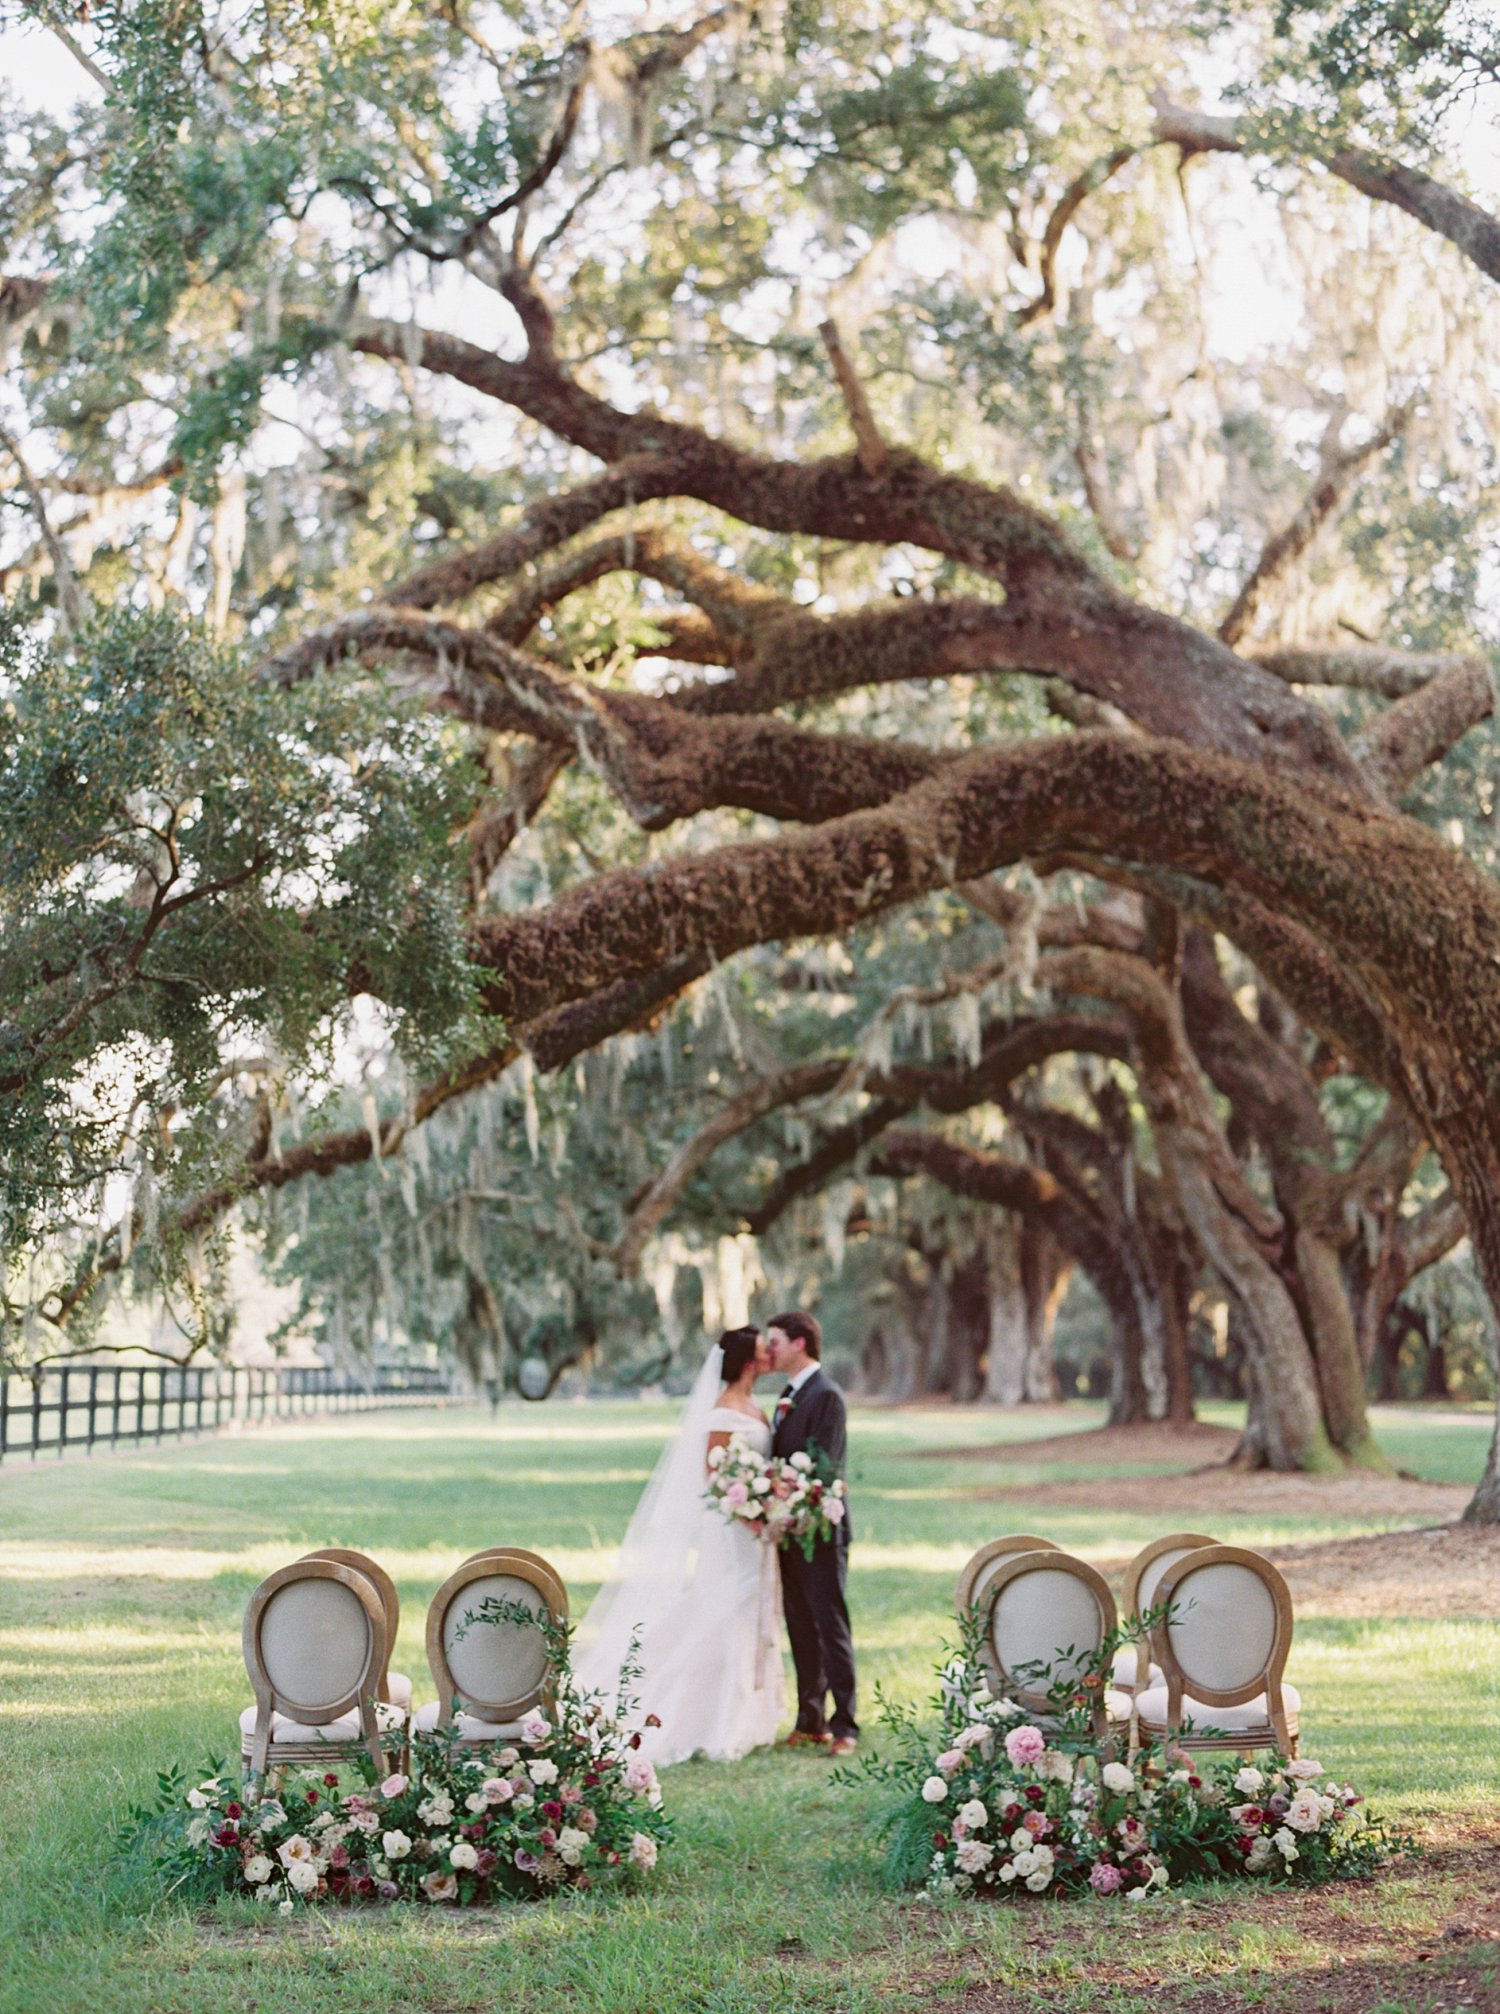 Bride and groom ceremony in front of Spanish Moss Trees in South Carolina Wedding